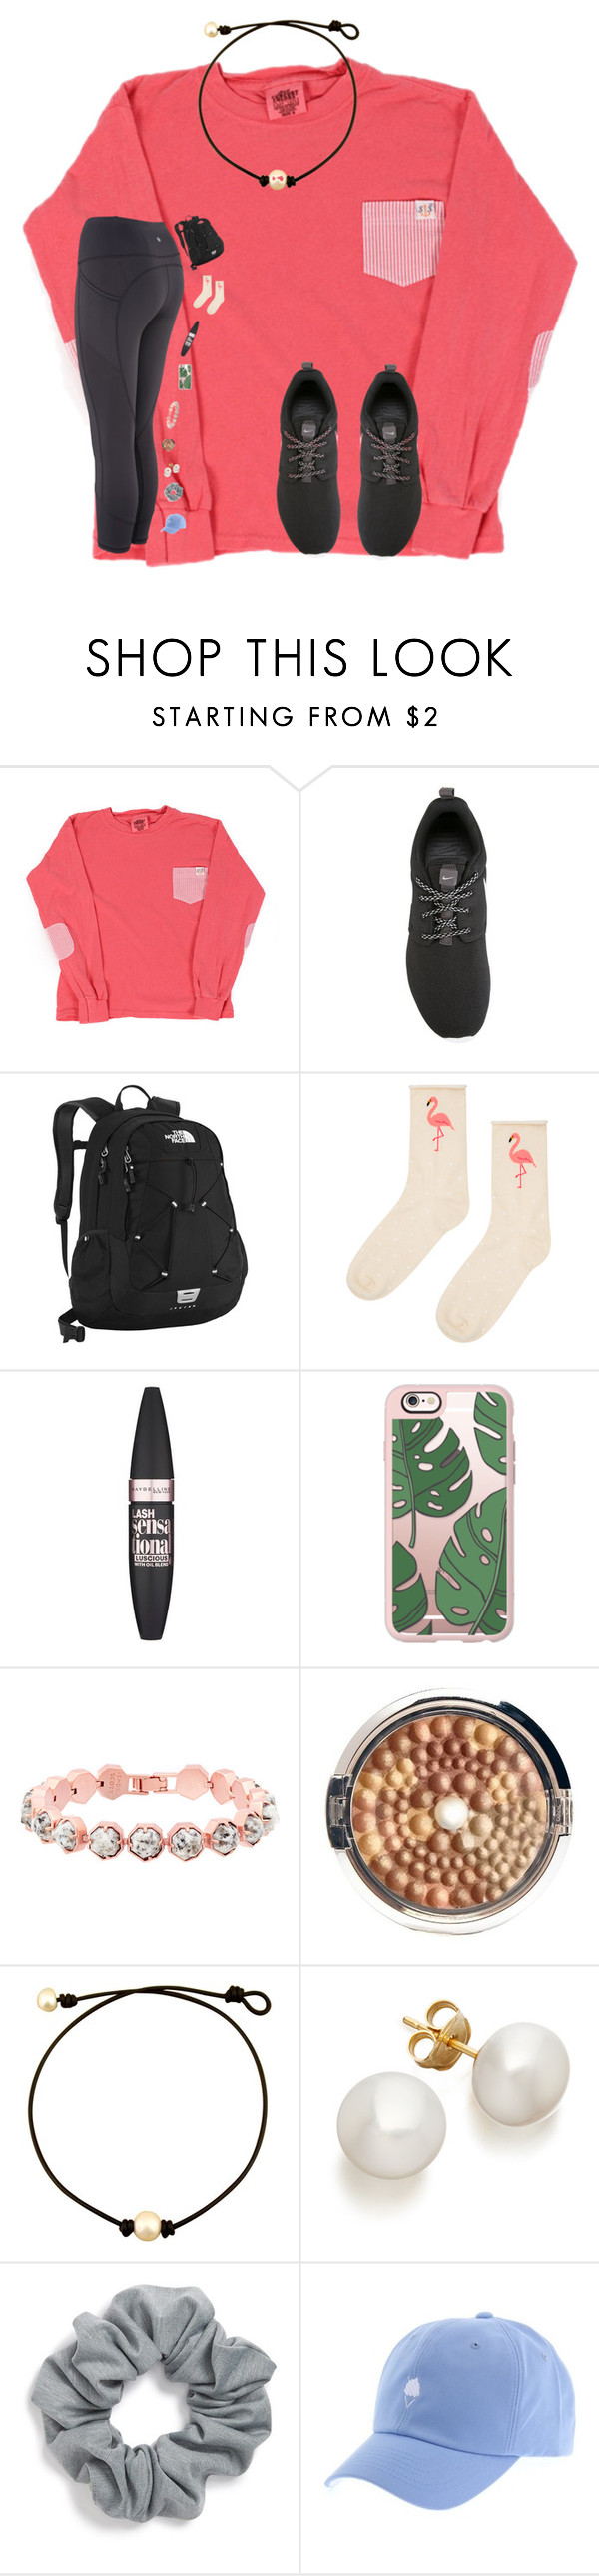 """Why not go out on a limb? That's where all the fruit is"" by avazumpano ❤ liked on Polyvore featuring NIKE, The North Face, Accessorize, Maybelline, Casetify, Kendra Scott, Physicians Formula and Natasha Couture"